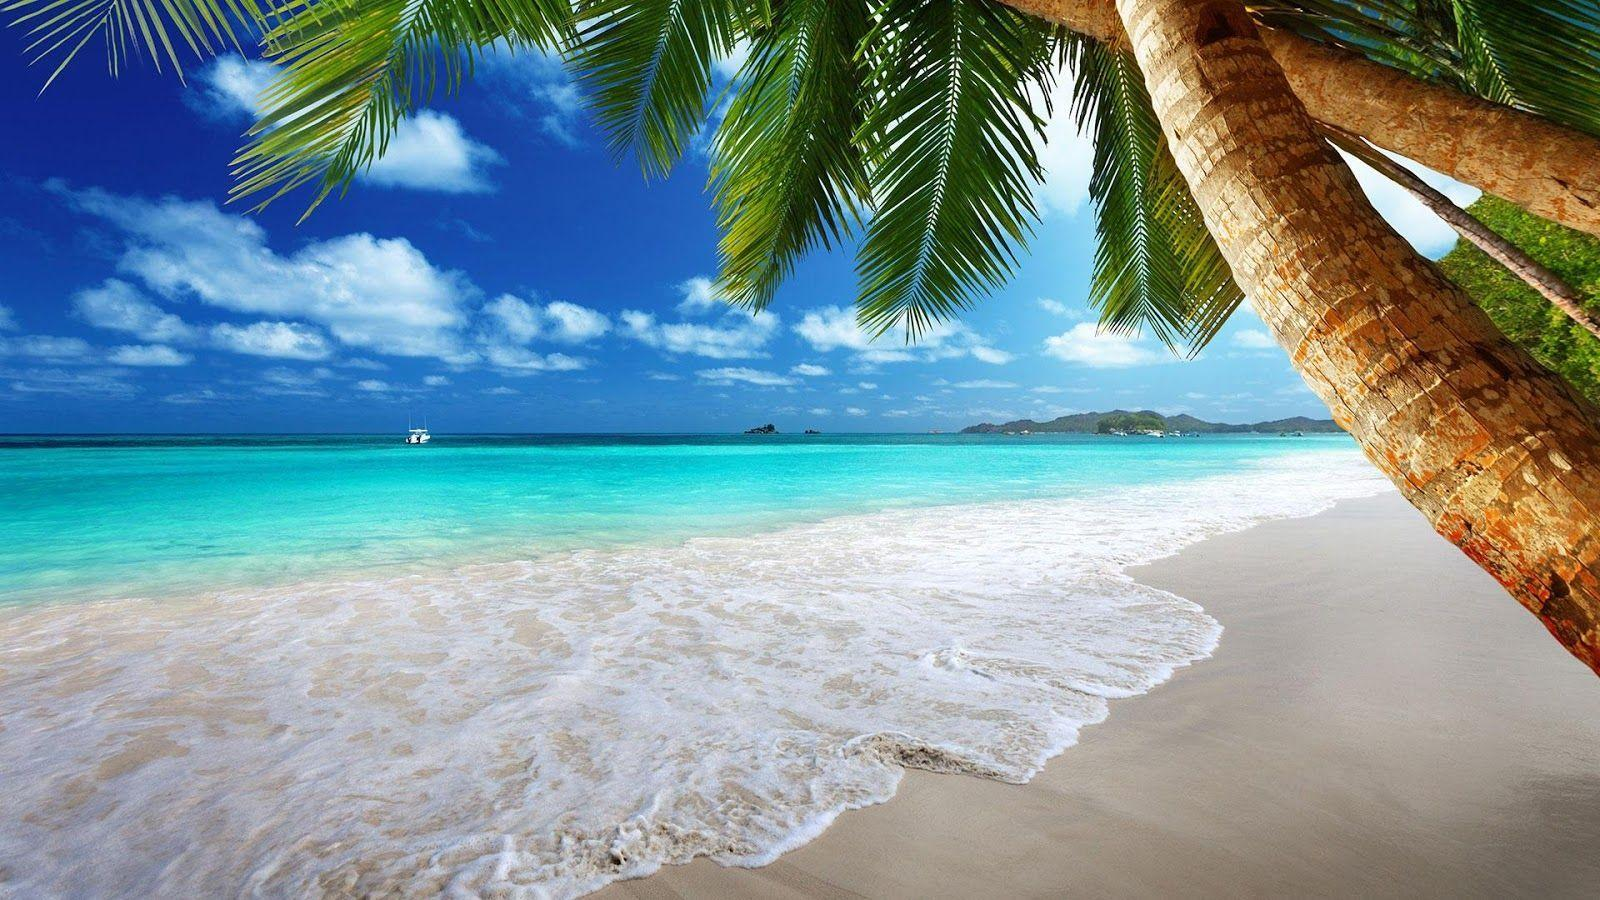 Beach Wallpaper Widescreen Widescreen 2 HD Wallpapers | lzamgs.